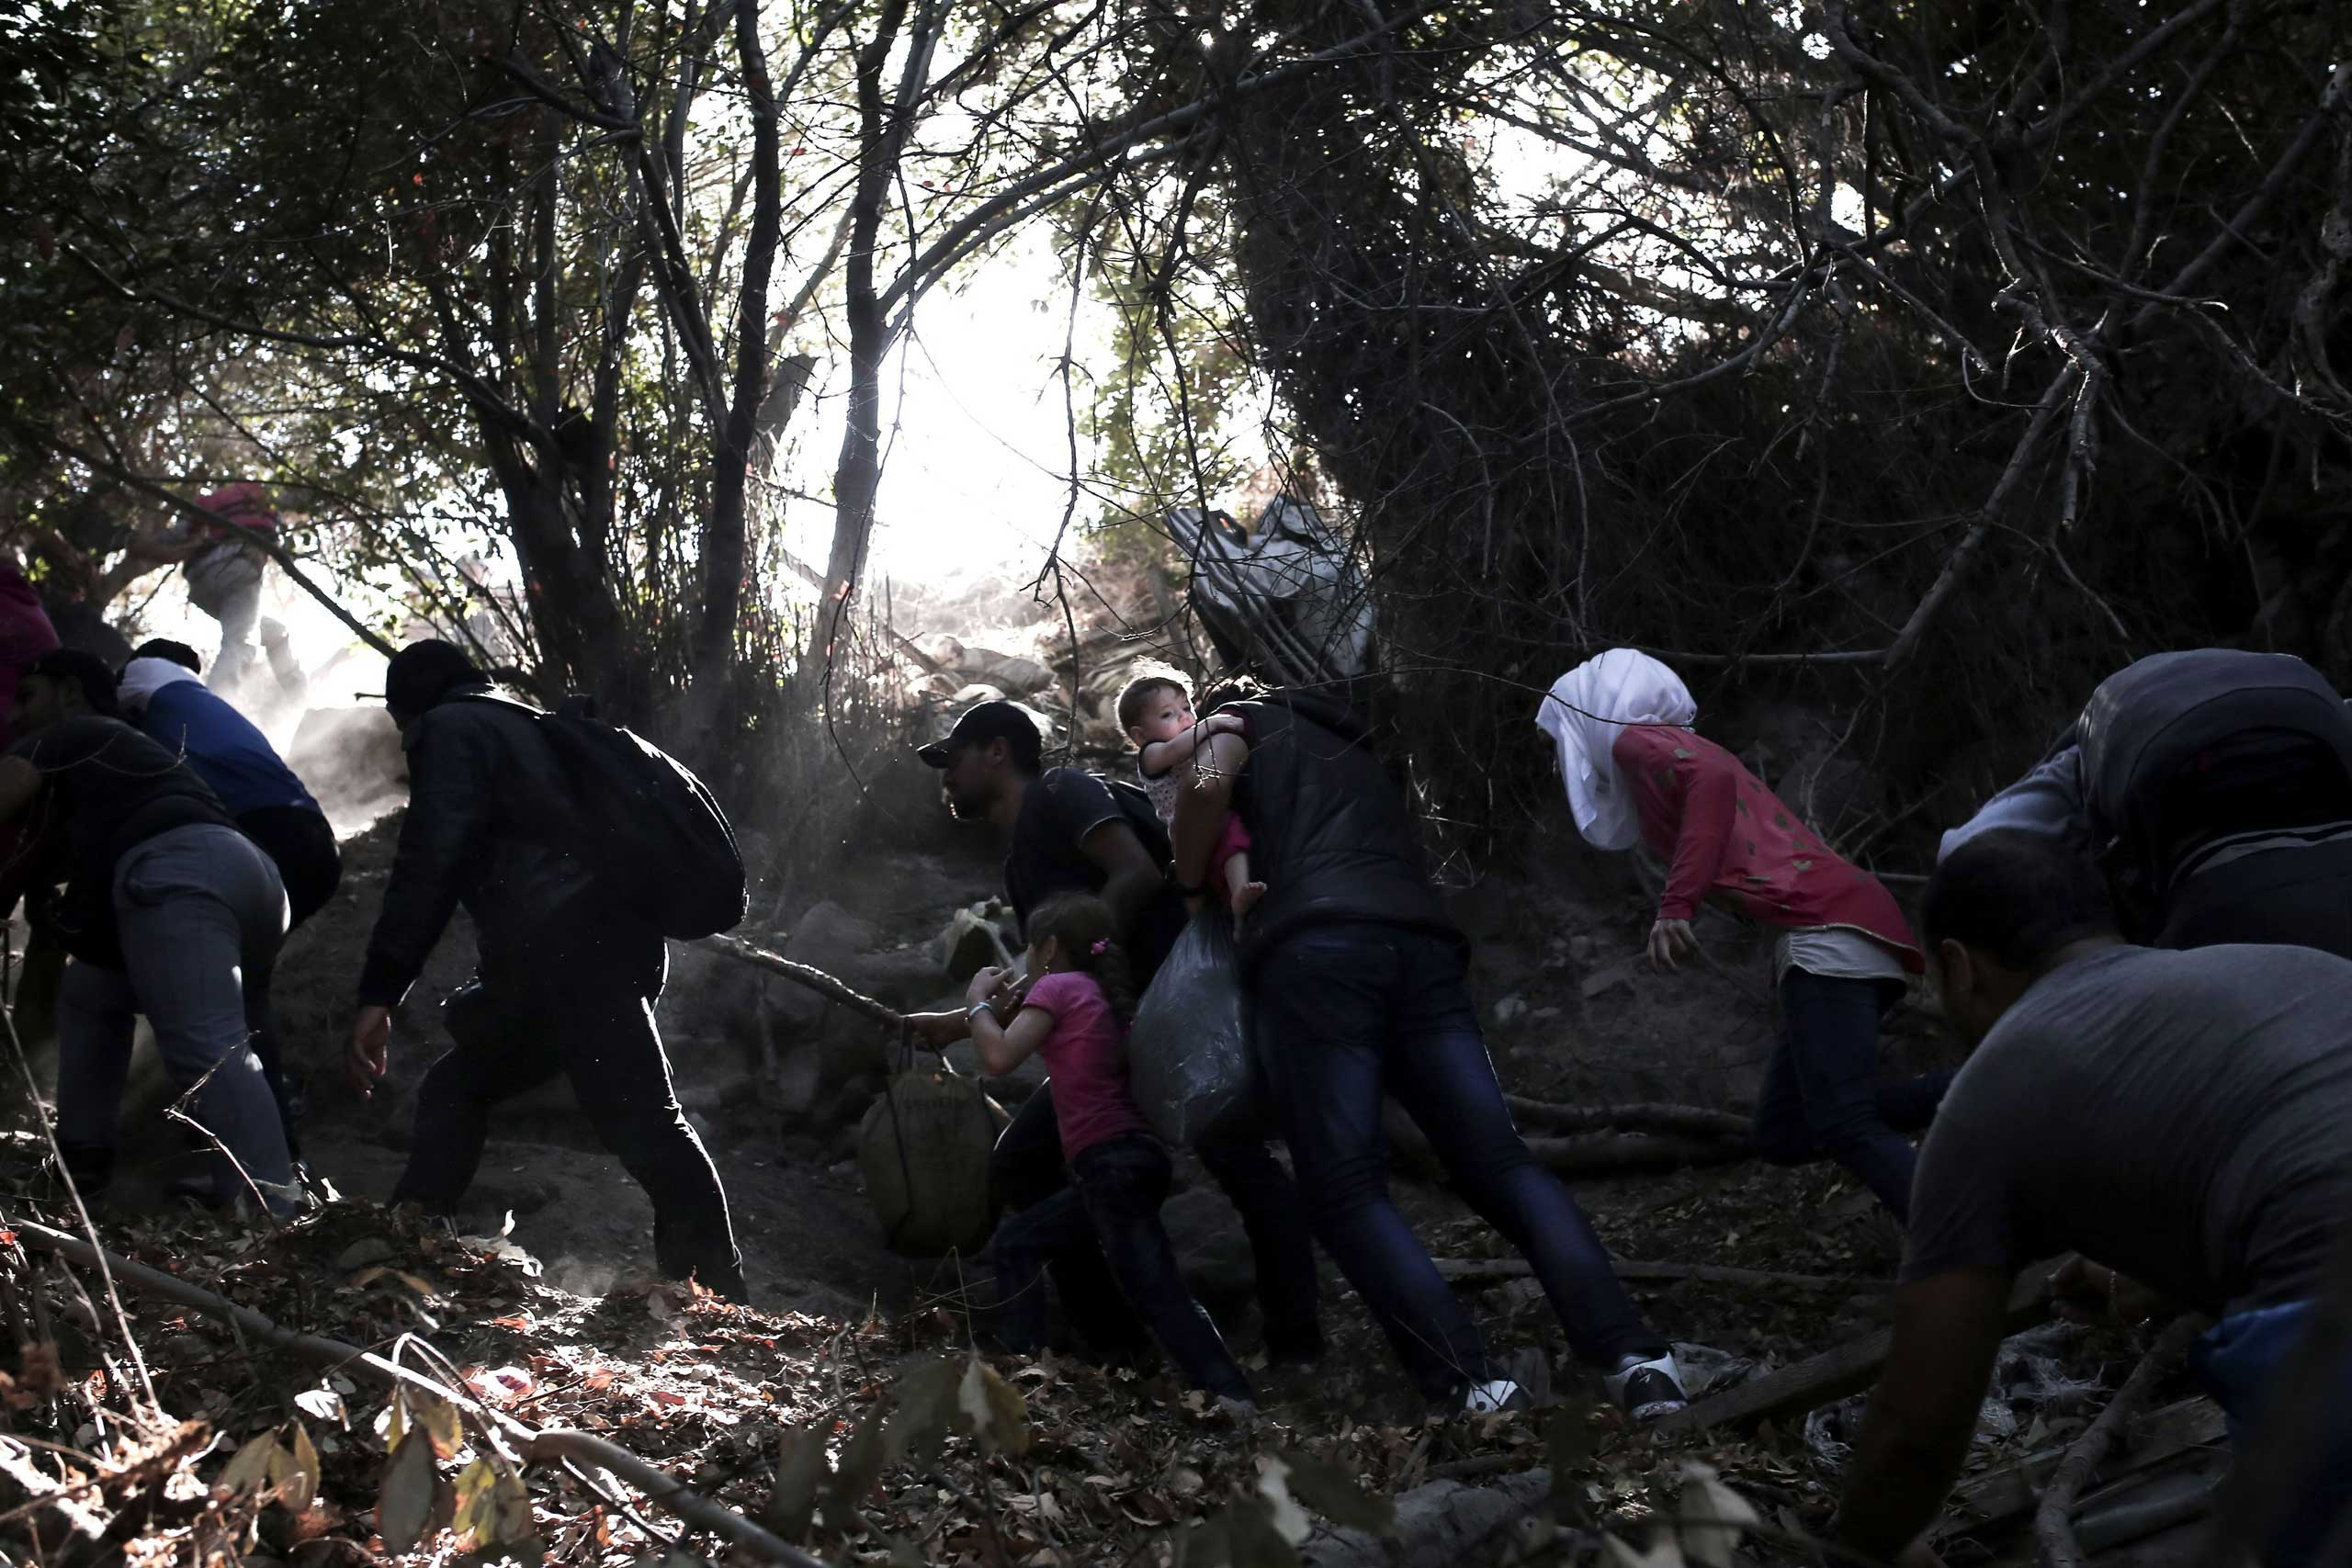 Syrian refugees try to climb a slope after arriving from Turkey on the shores of the Greek island Lesbos, Sept. 11, 2015.